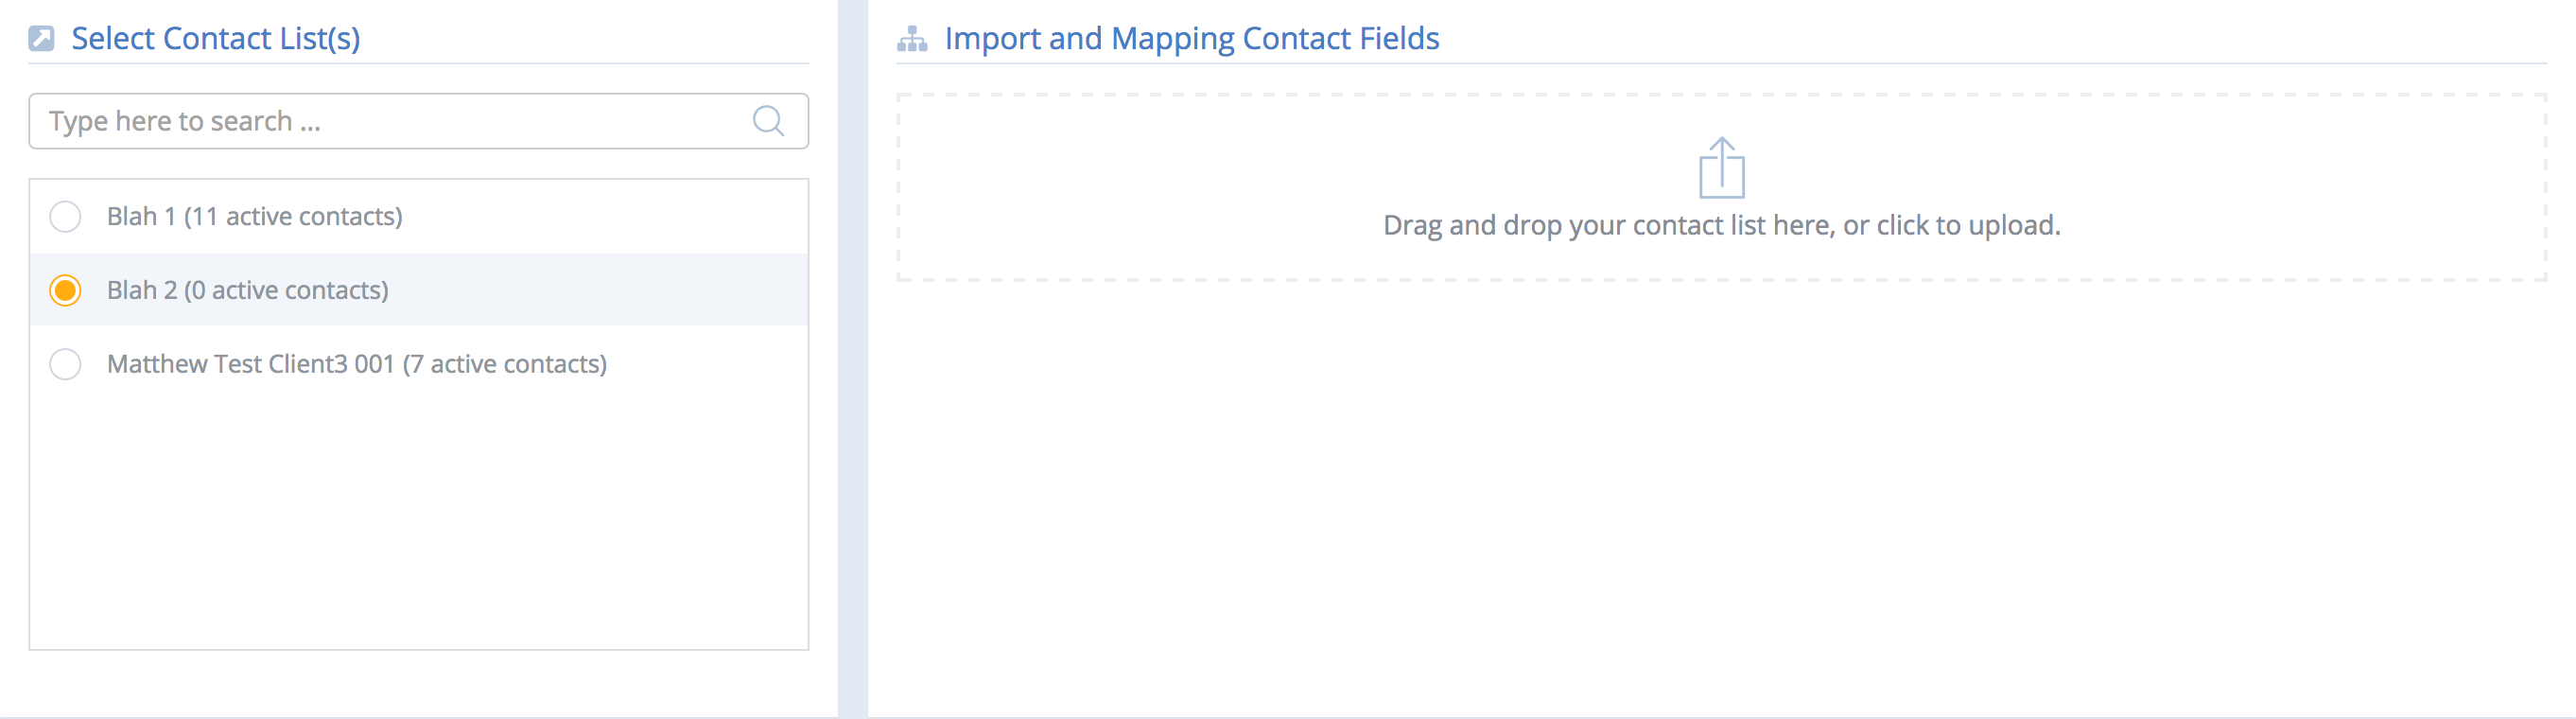 Select-Contact-List